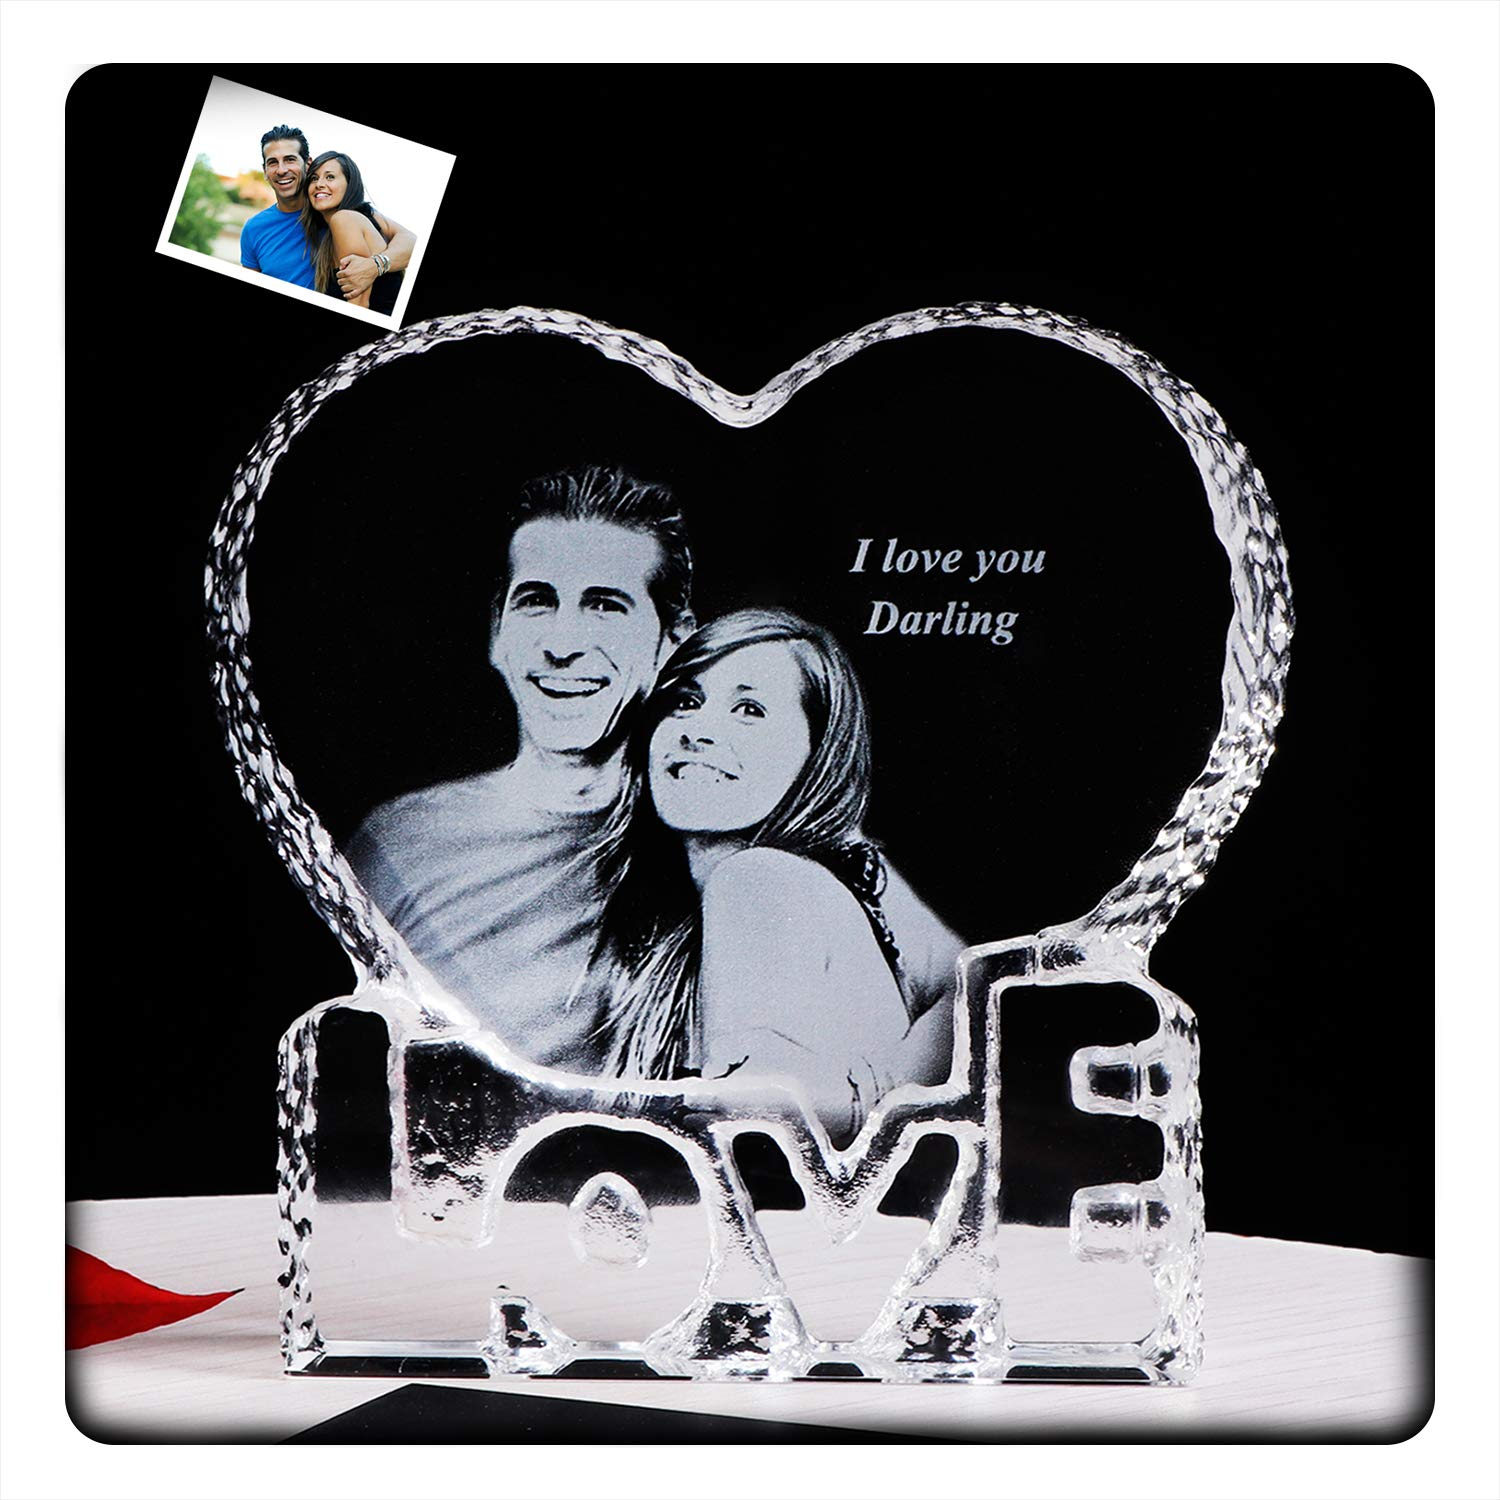 YWHL Personalized Customized Crystal Photo Picture 2D Etched Engraved Wedding Memorial Wife Girlfriend Birthday Gifts for Anniversary Her Him Husband Boyfriend (Customized) by YWHL